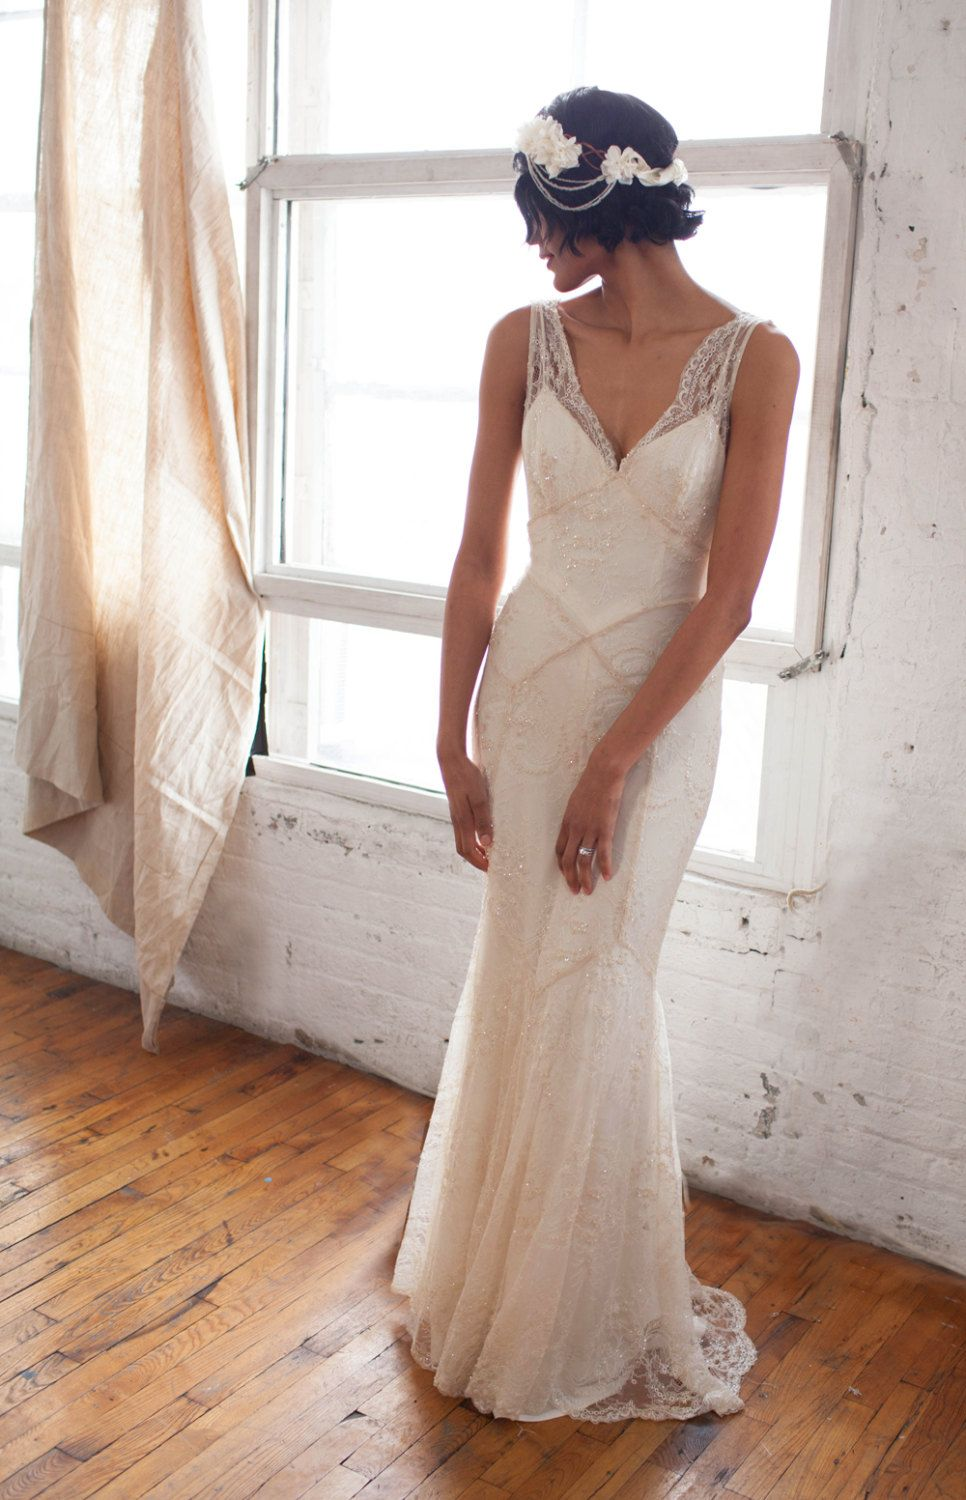 7187bd352e330 20 Art Deco Wedding Dress with Gatsby Glamour | Brides, Grooms ...